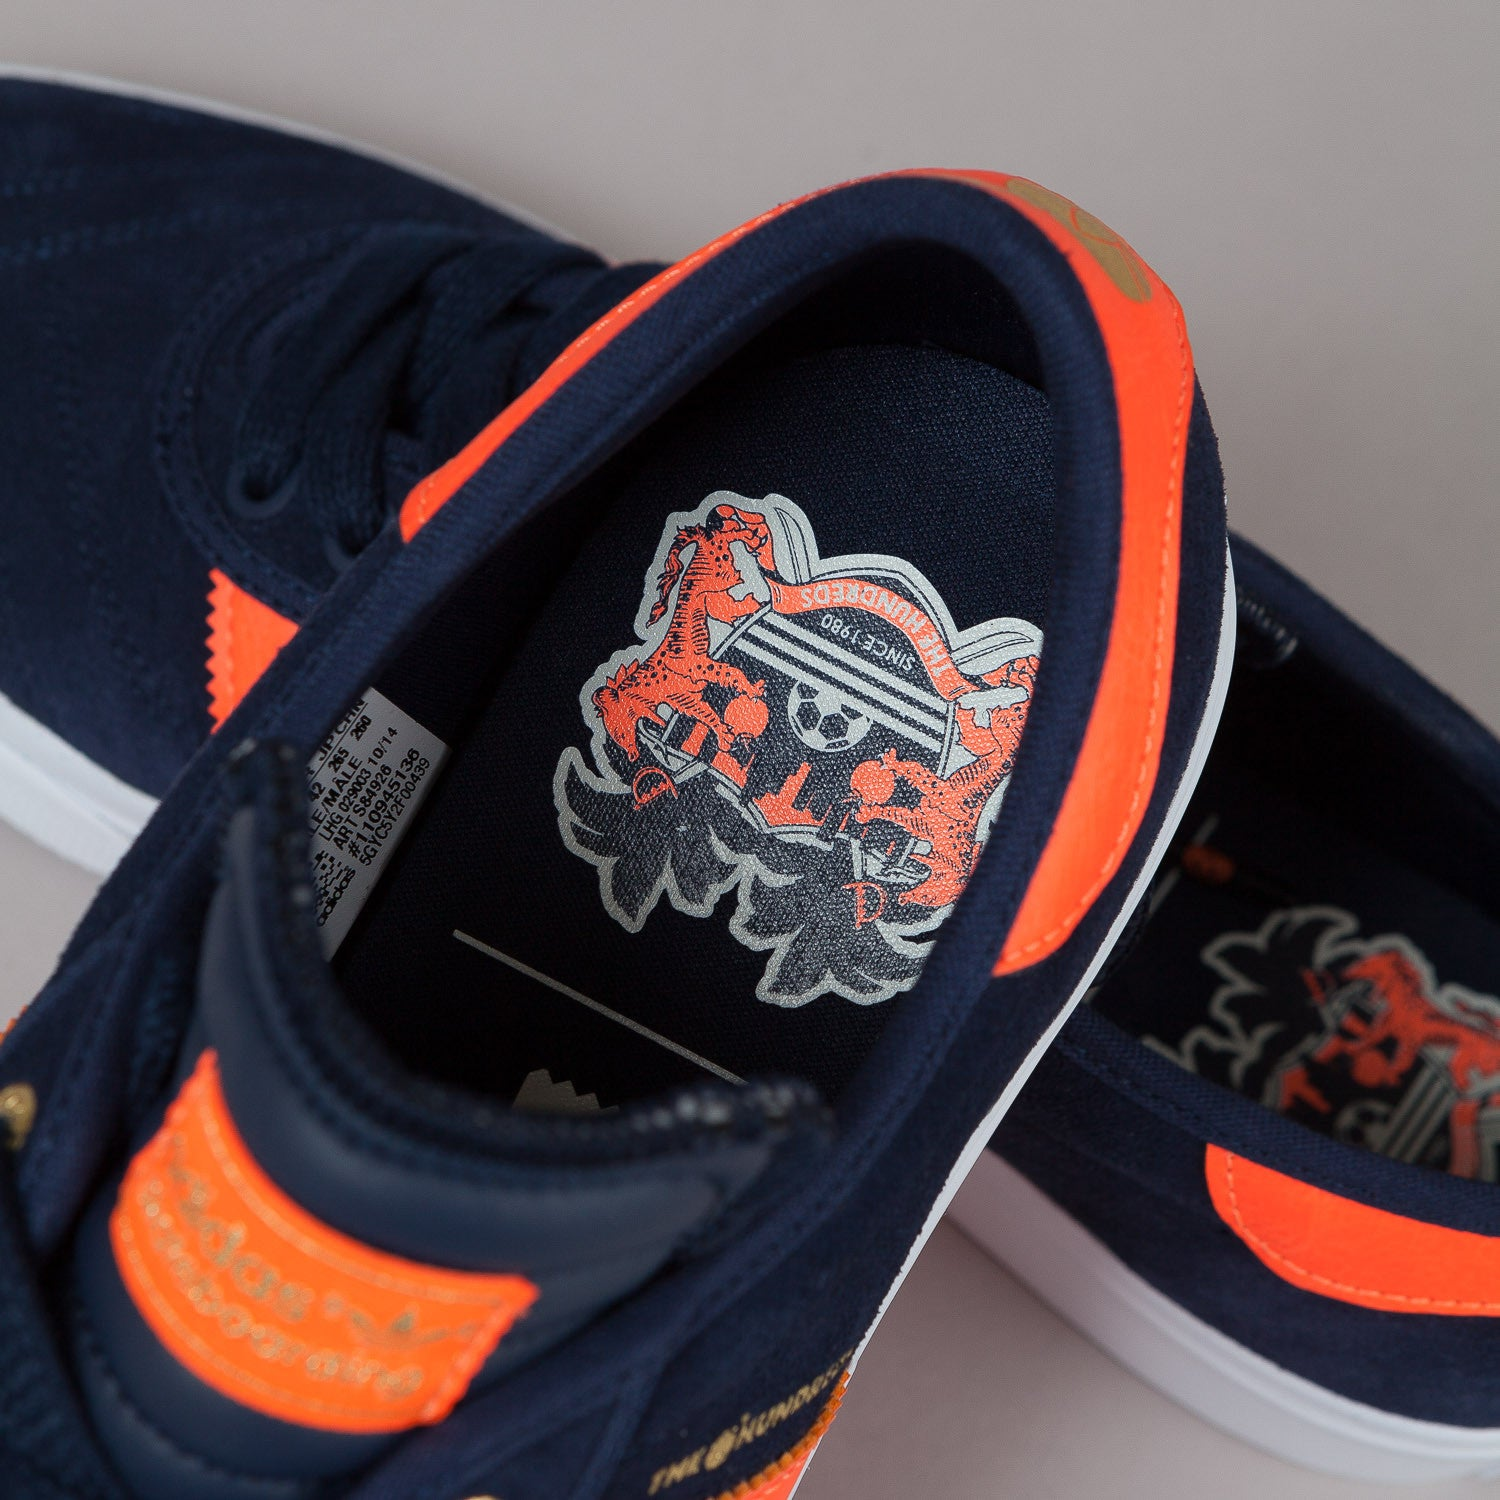 Adidas X The Hundreds Adi-Ease Shoes - Collegiate Navy / Orange / White